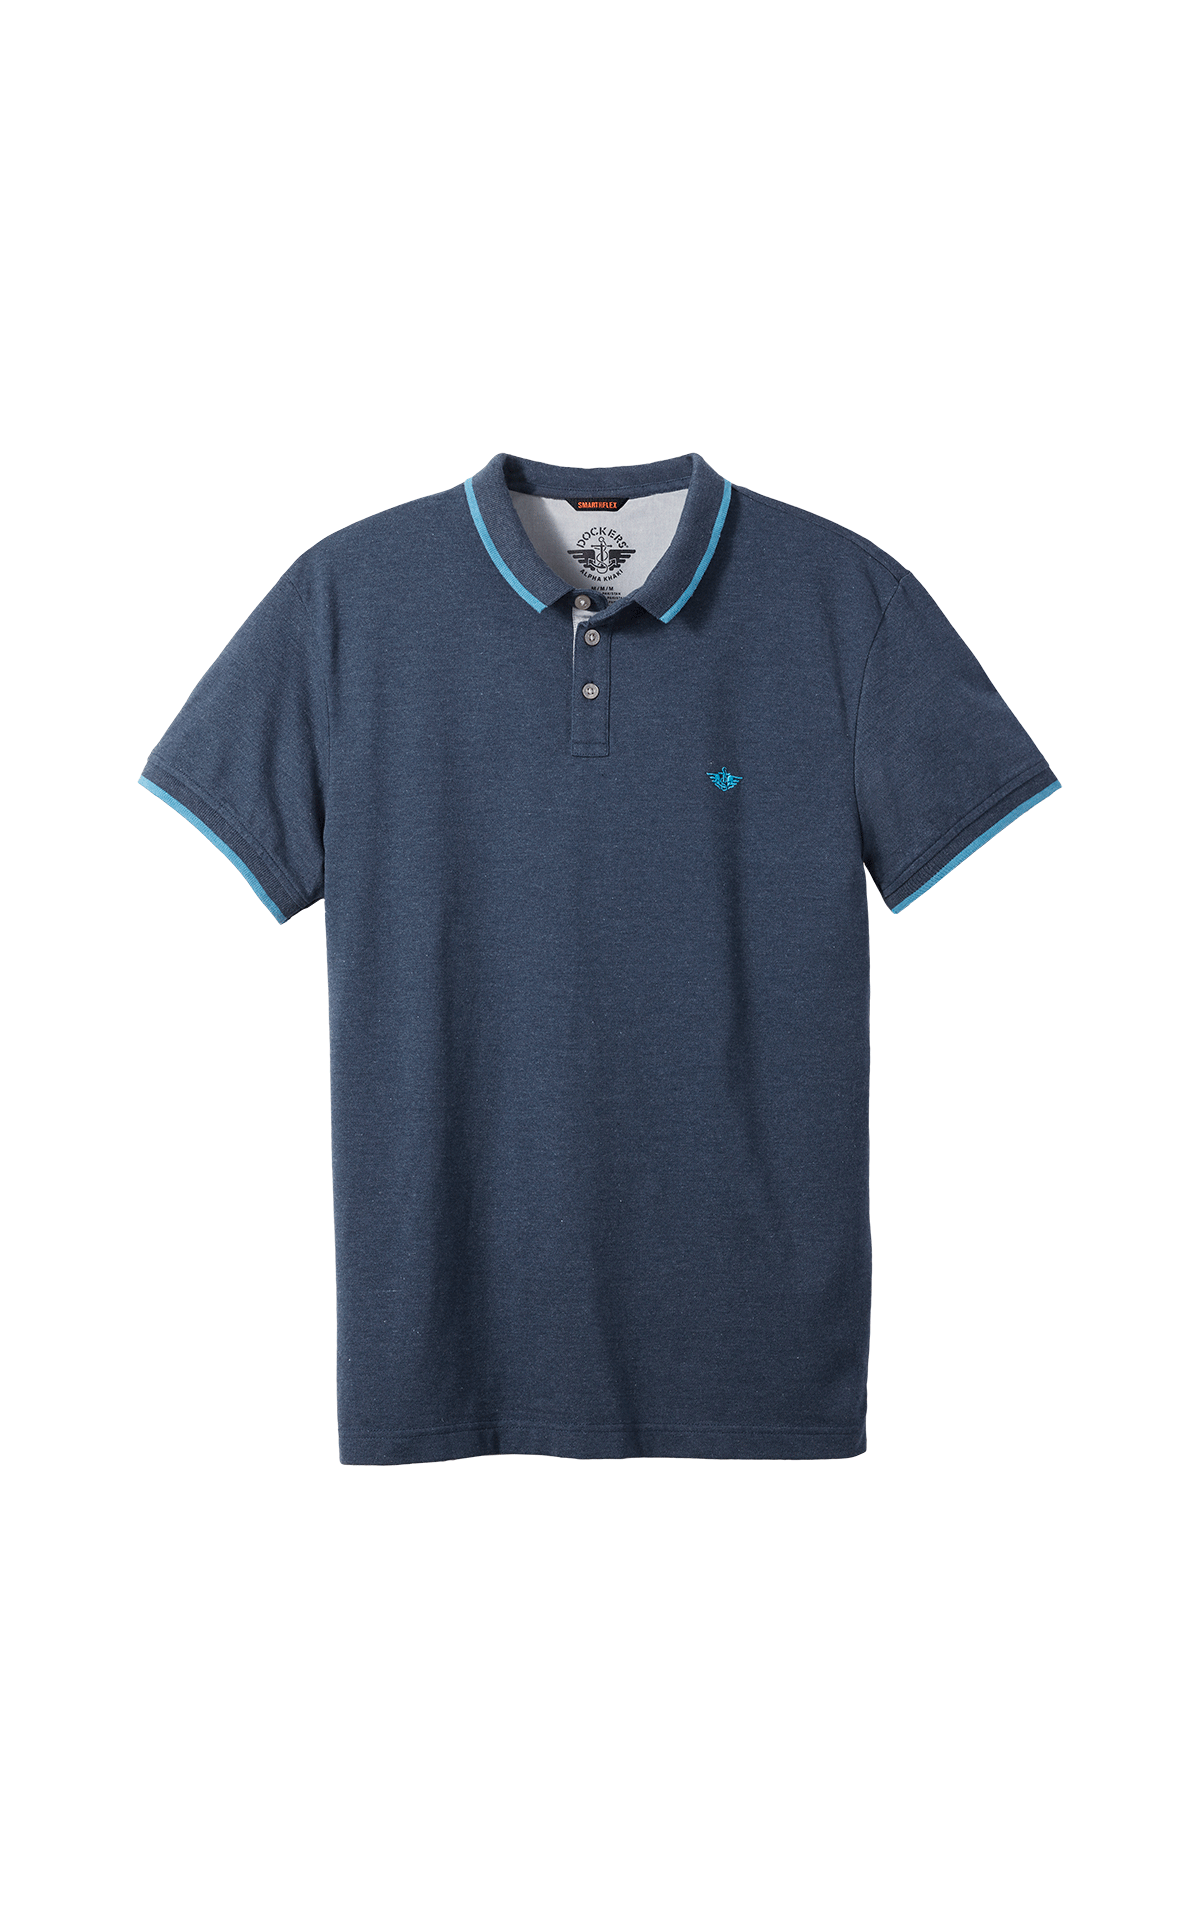 Bleu marines short sleeves polo shirt for man Dockers